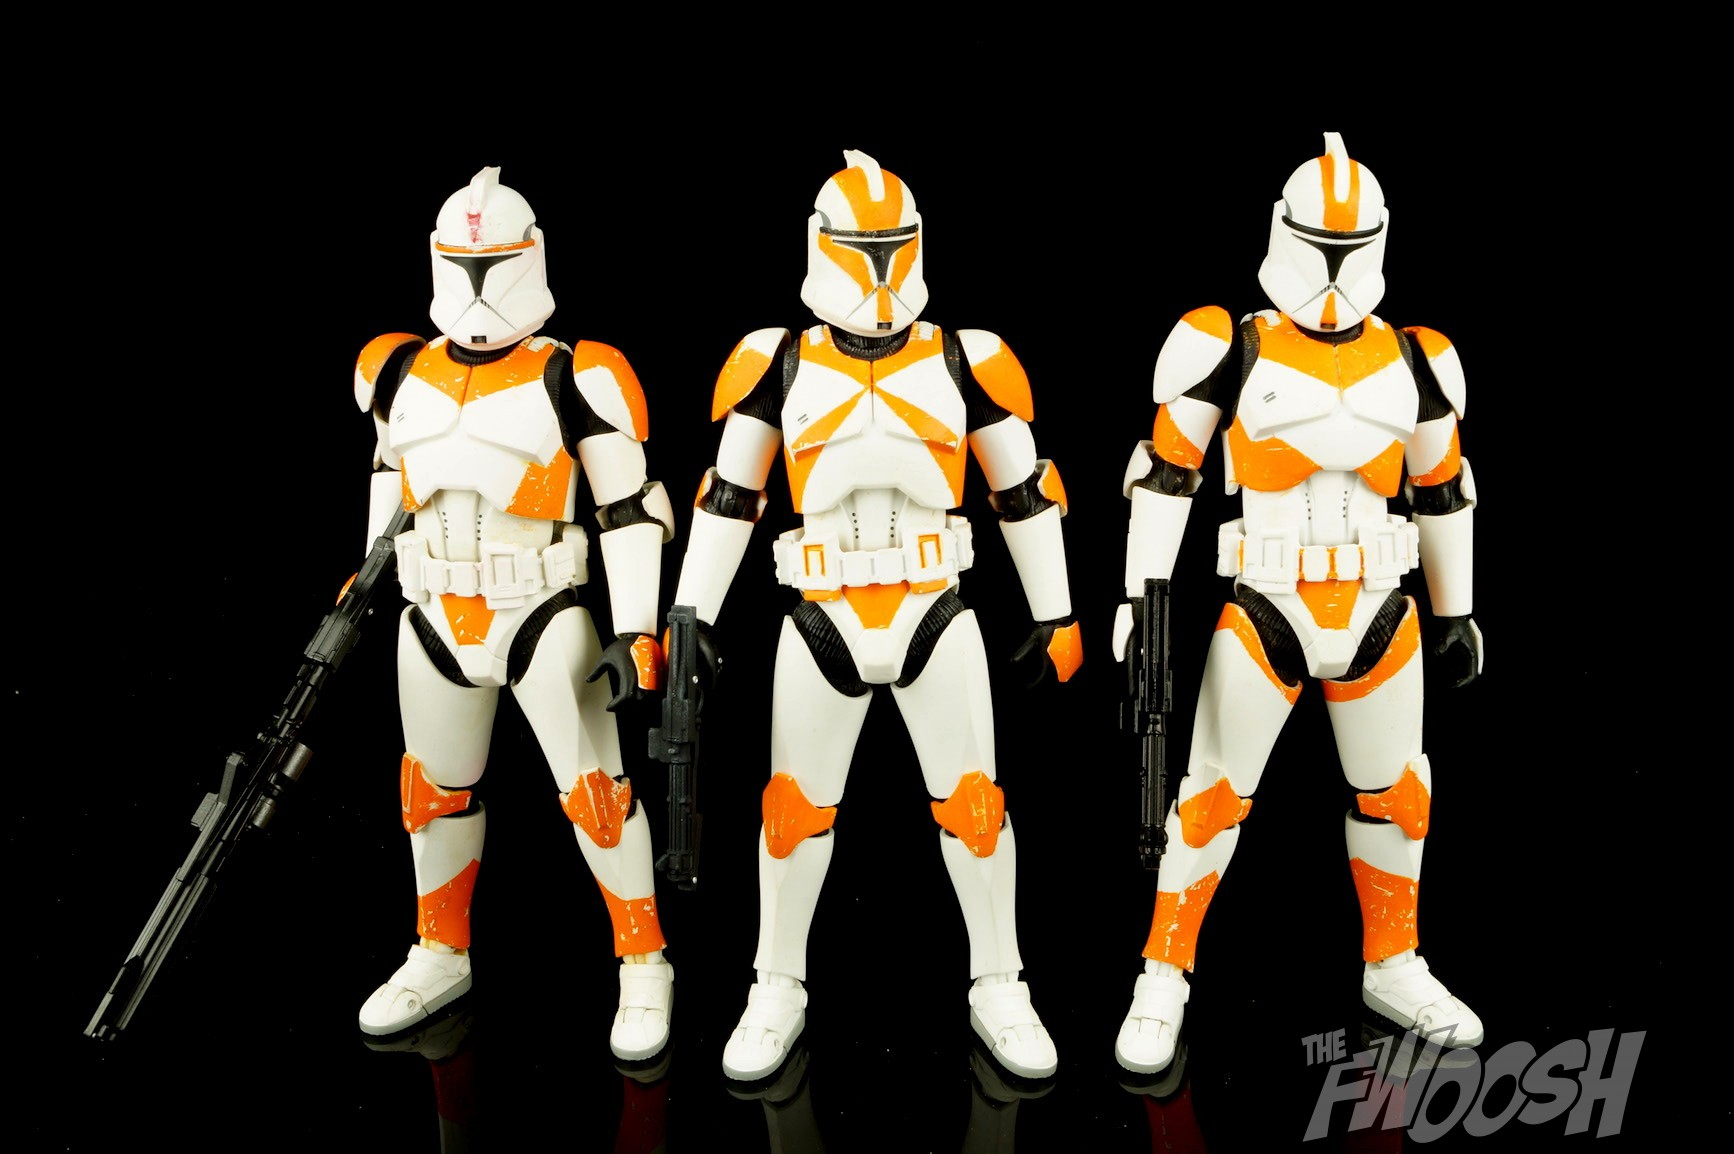 STAR WARS GALACTIC HEROES CLONE TROOPER FIGURES SELECTION MANY TO CHOOSE FROM!